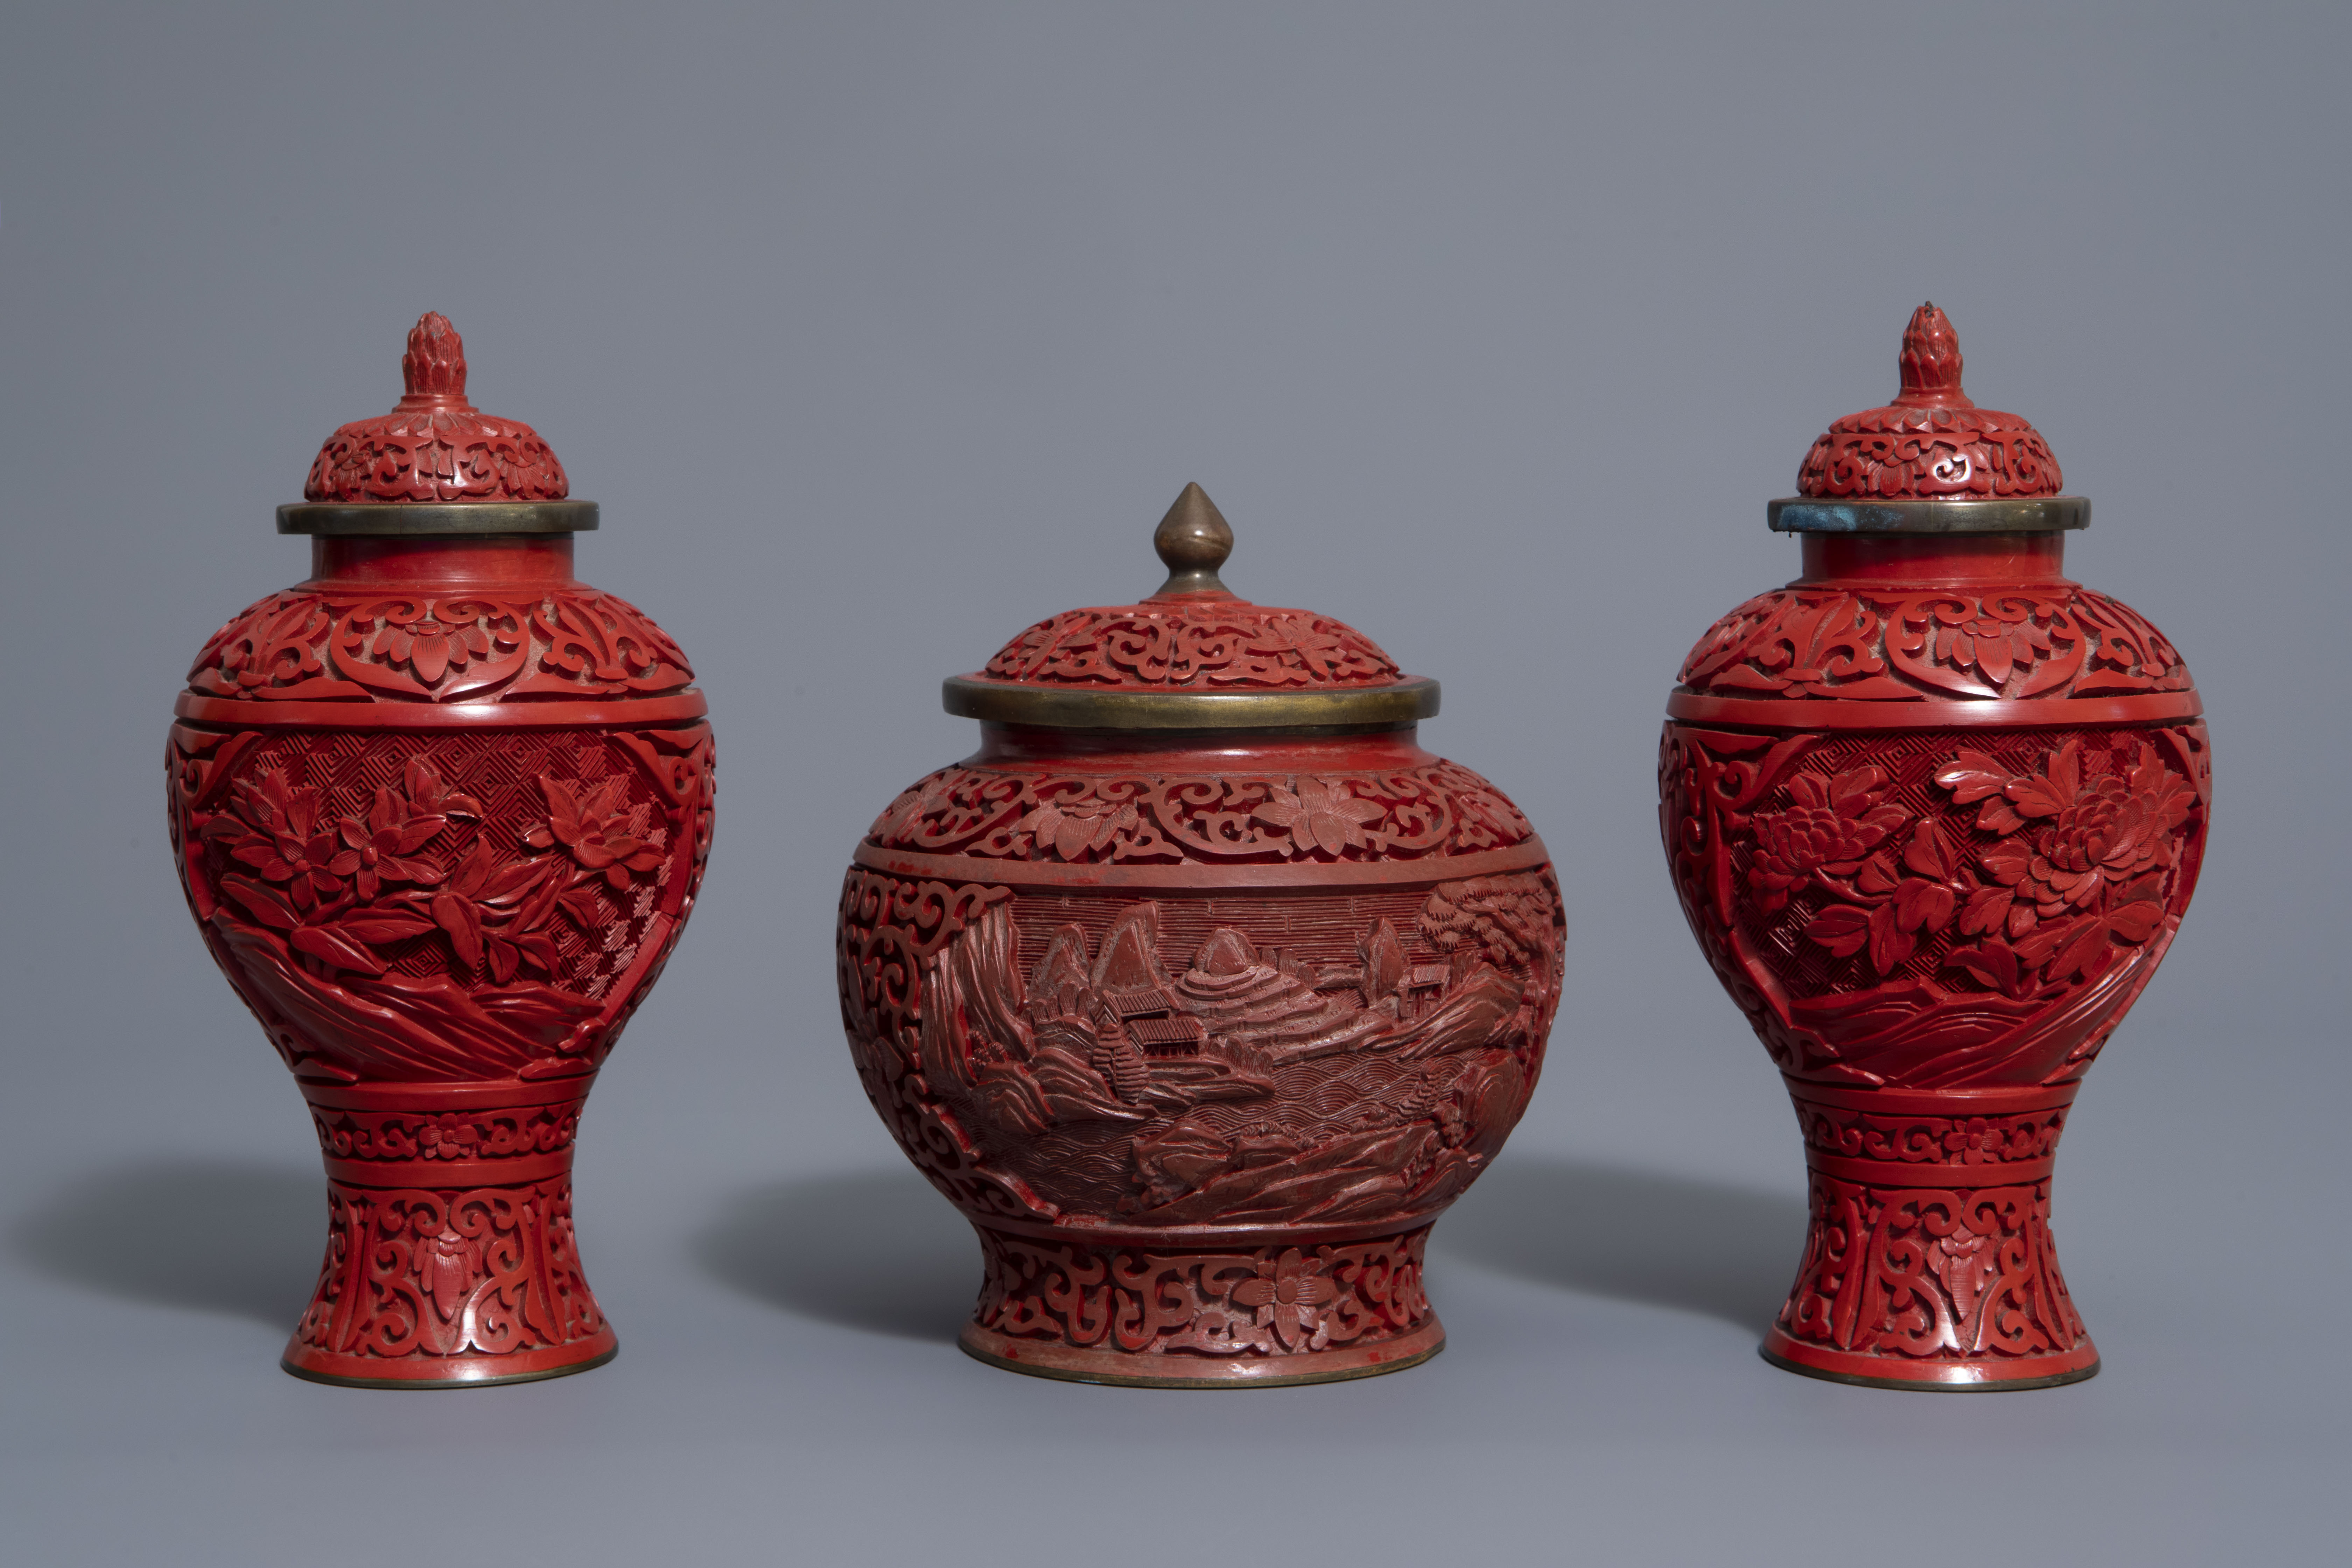 A Chinese tea block, cloisonné teapot, wall vase, bamboo brush pot & 3 red lacquer vases, 20th C. - Image 4 of 16